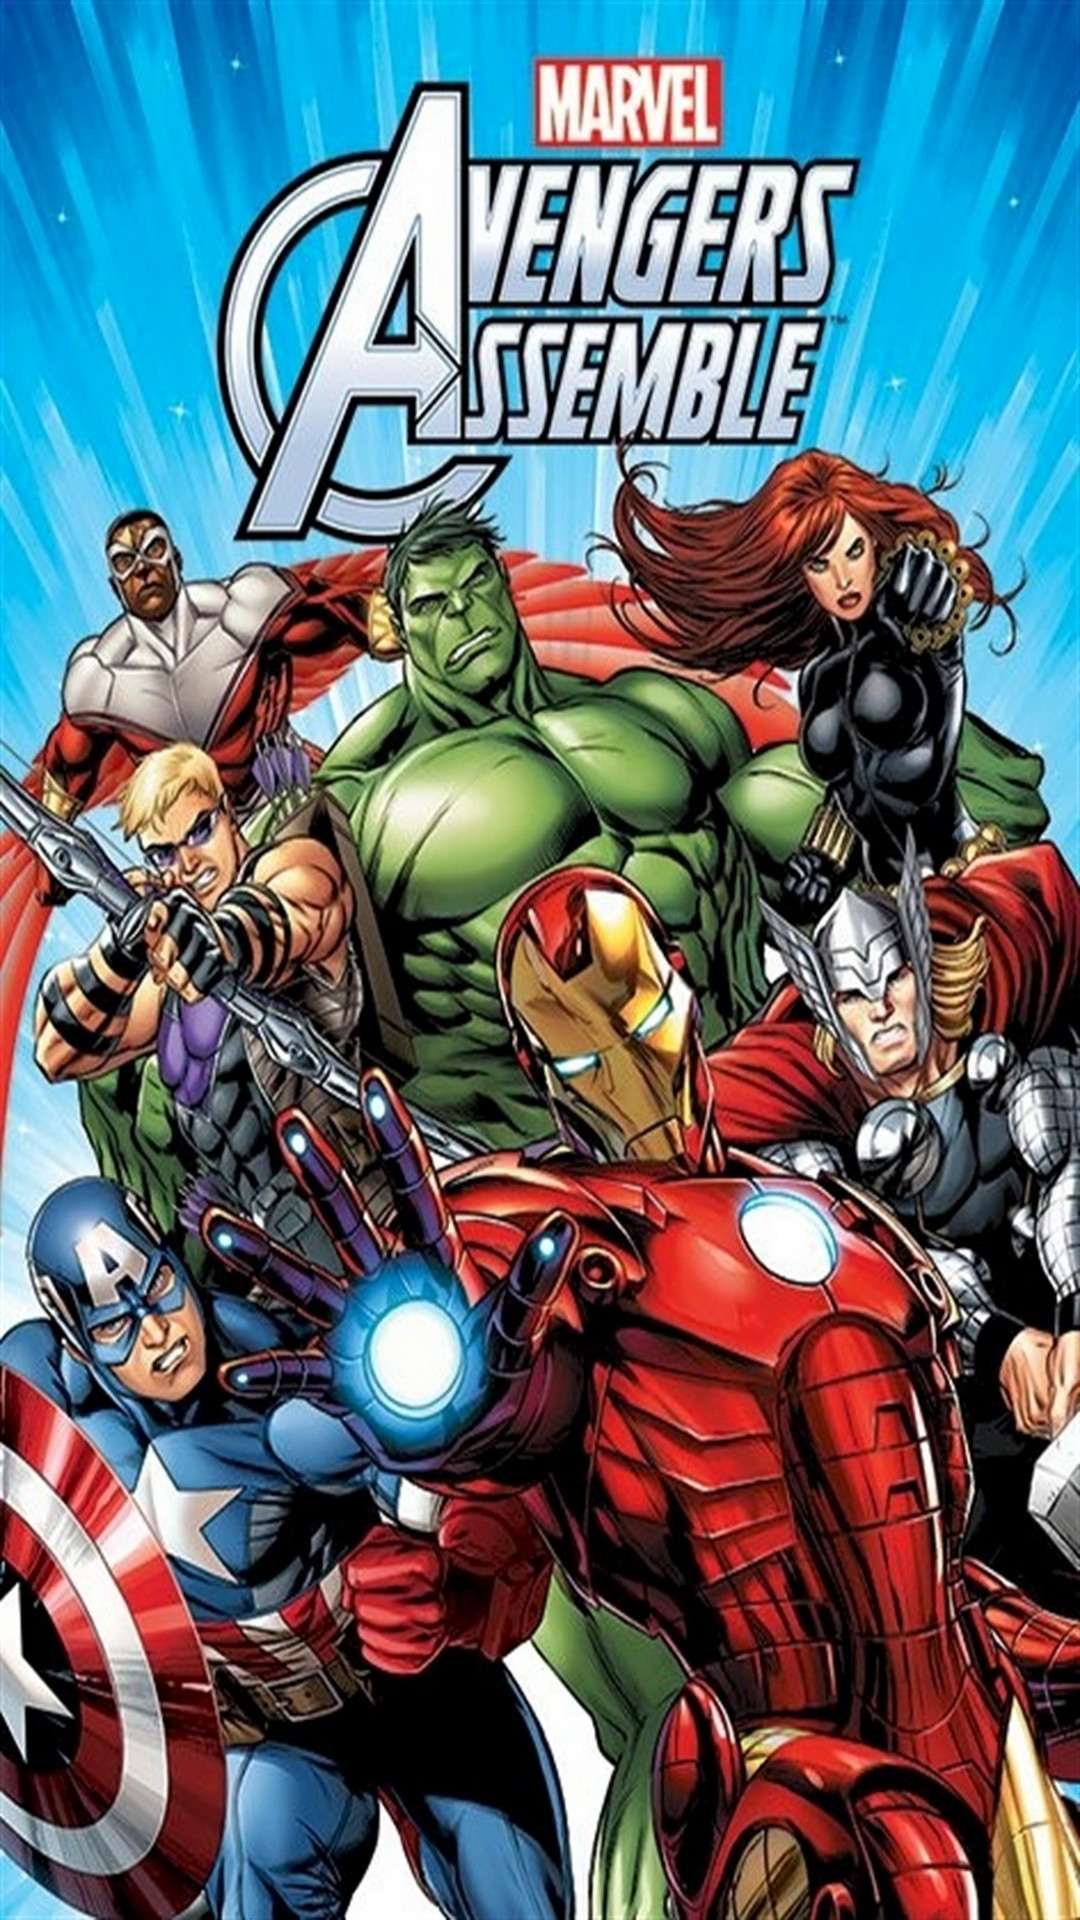 Marvel iPhone 6 Wallpaper, HD Plus | HD Wallpapers and iPhone 6 .